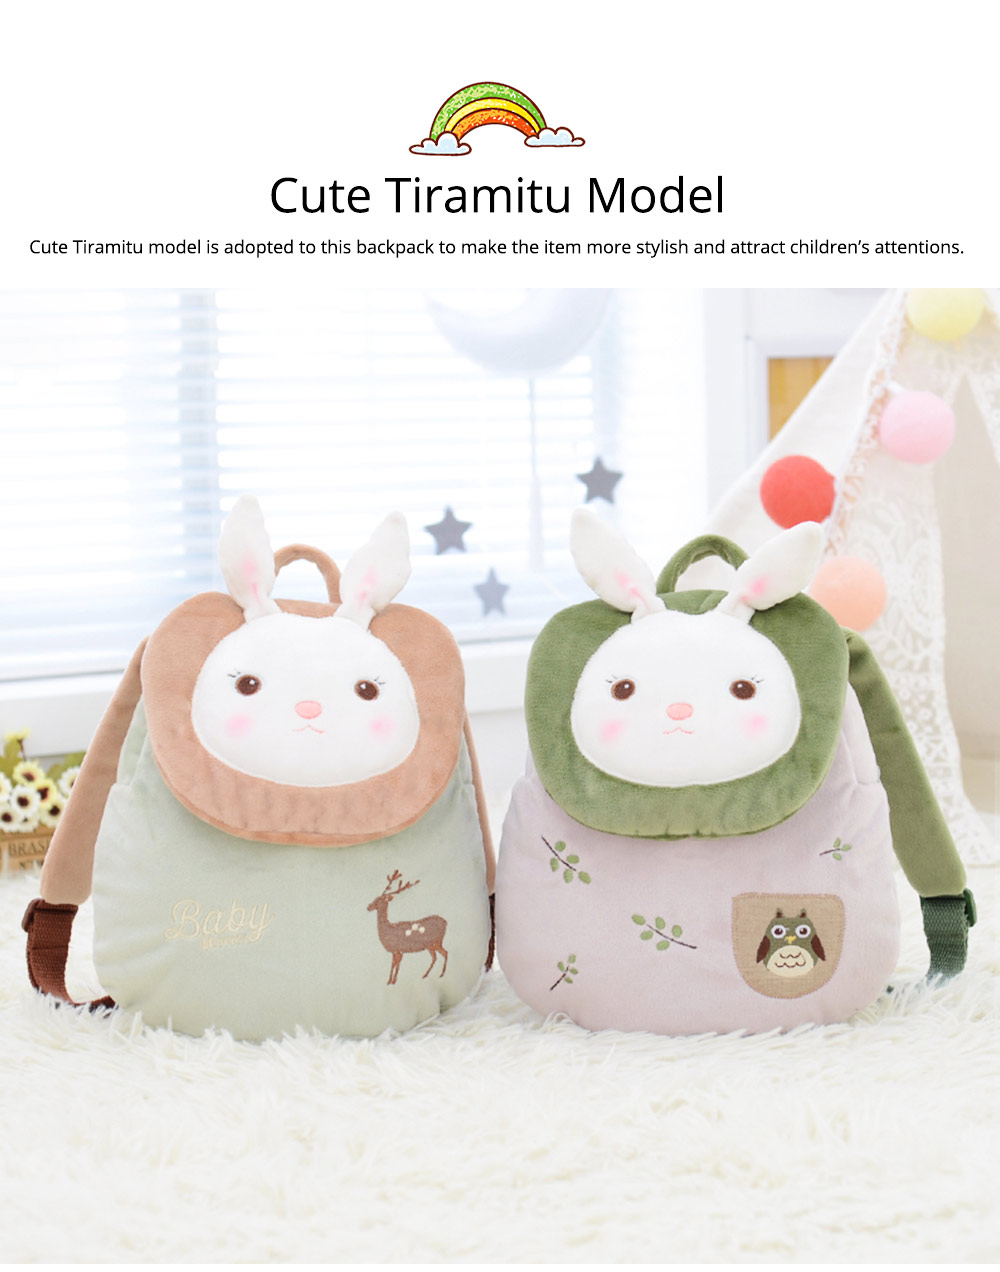 Cute Tiramitu Little Backpack for 1-3 Years Old Children, Large Capacity Smooth Short Plush Rabbit Rucksack Birthday Present for Boys Girls 6